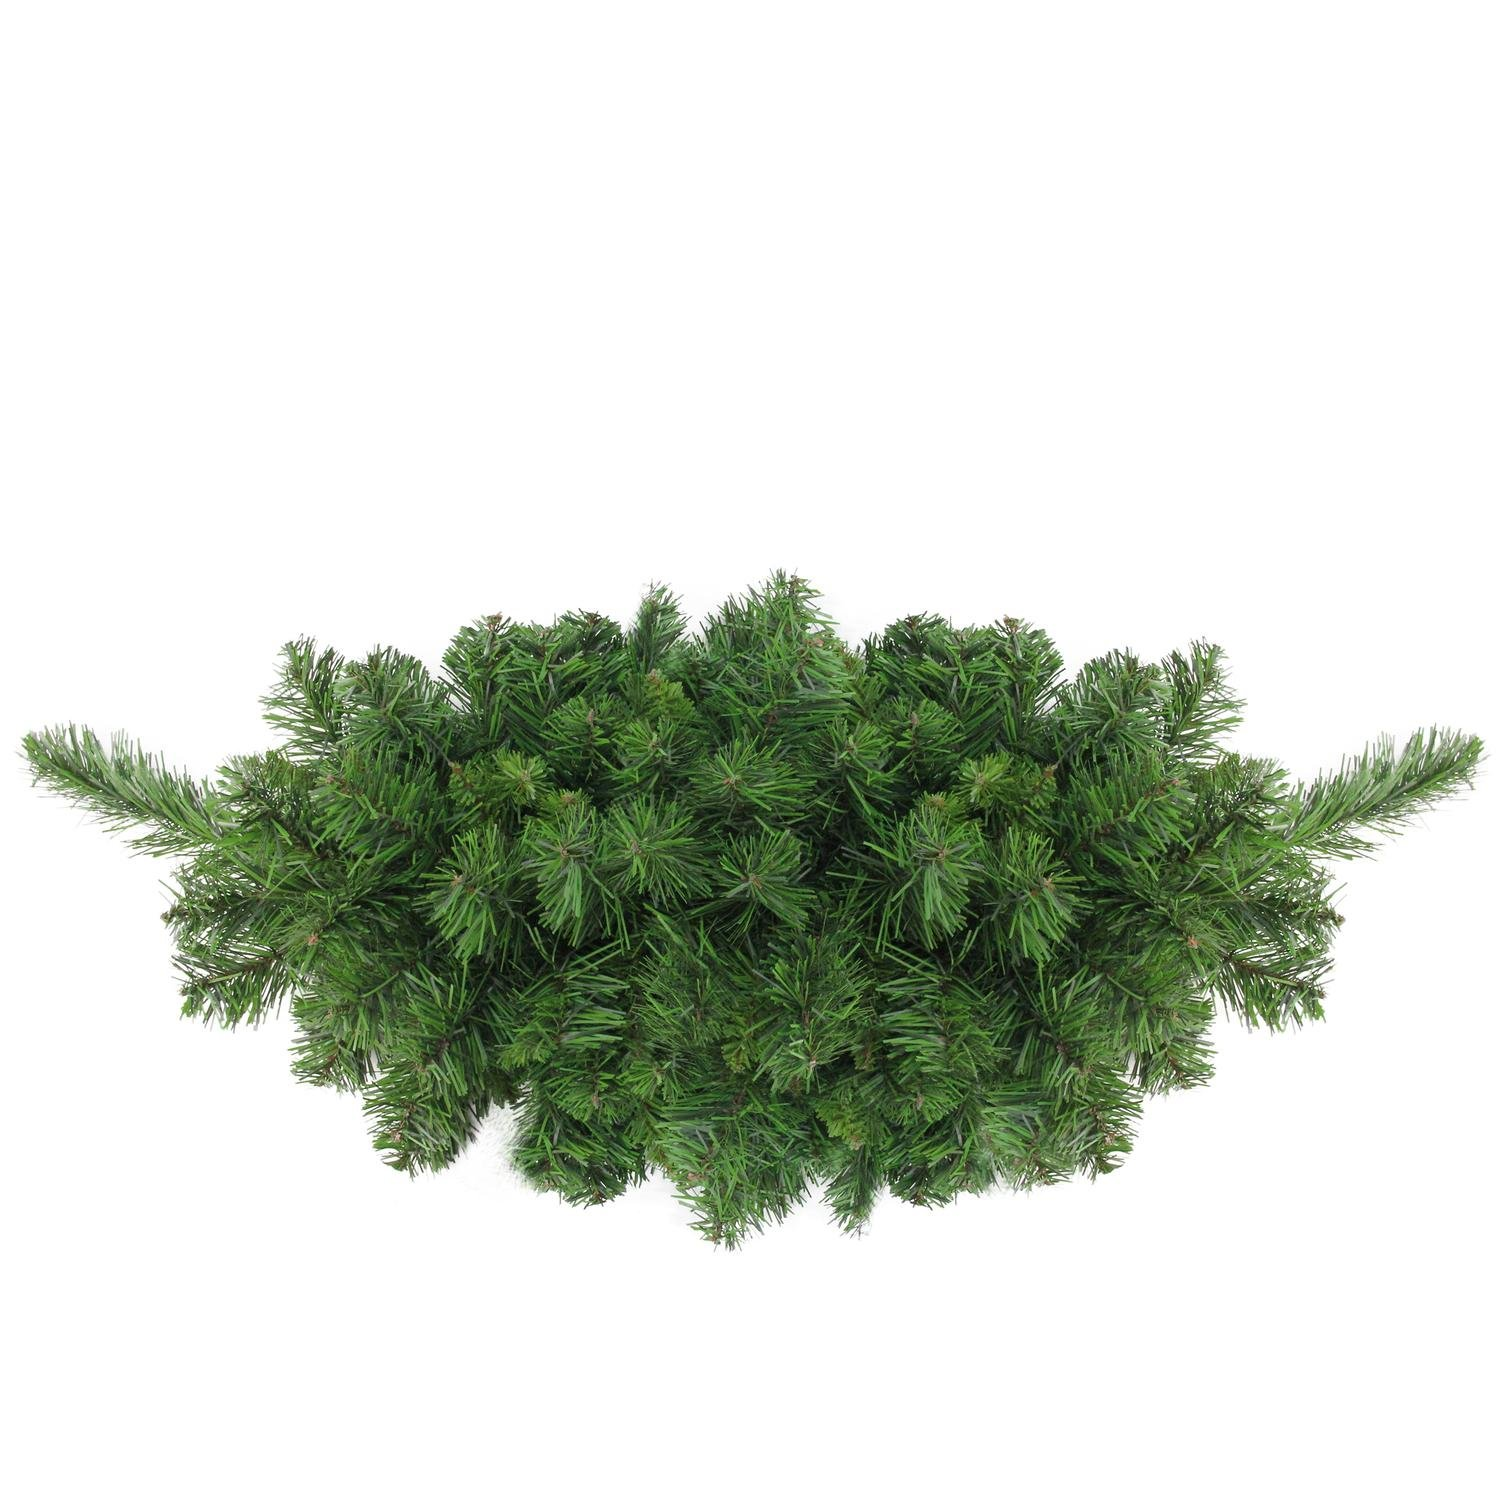 Northlight 32'' Lush Mixed Pine Artificial Christmas Swag - Unlit